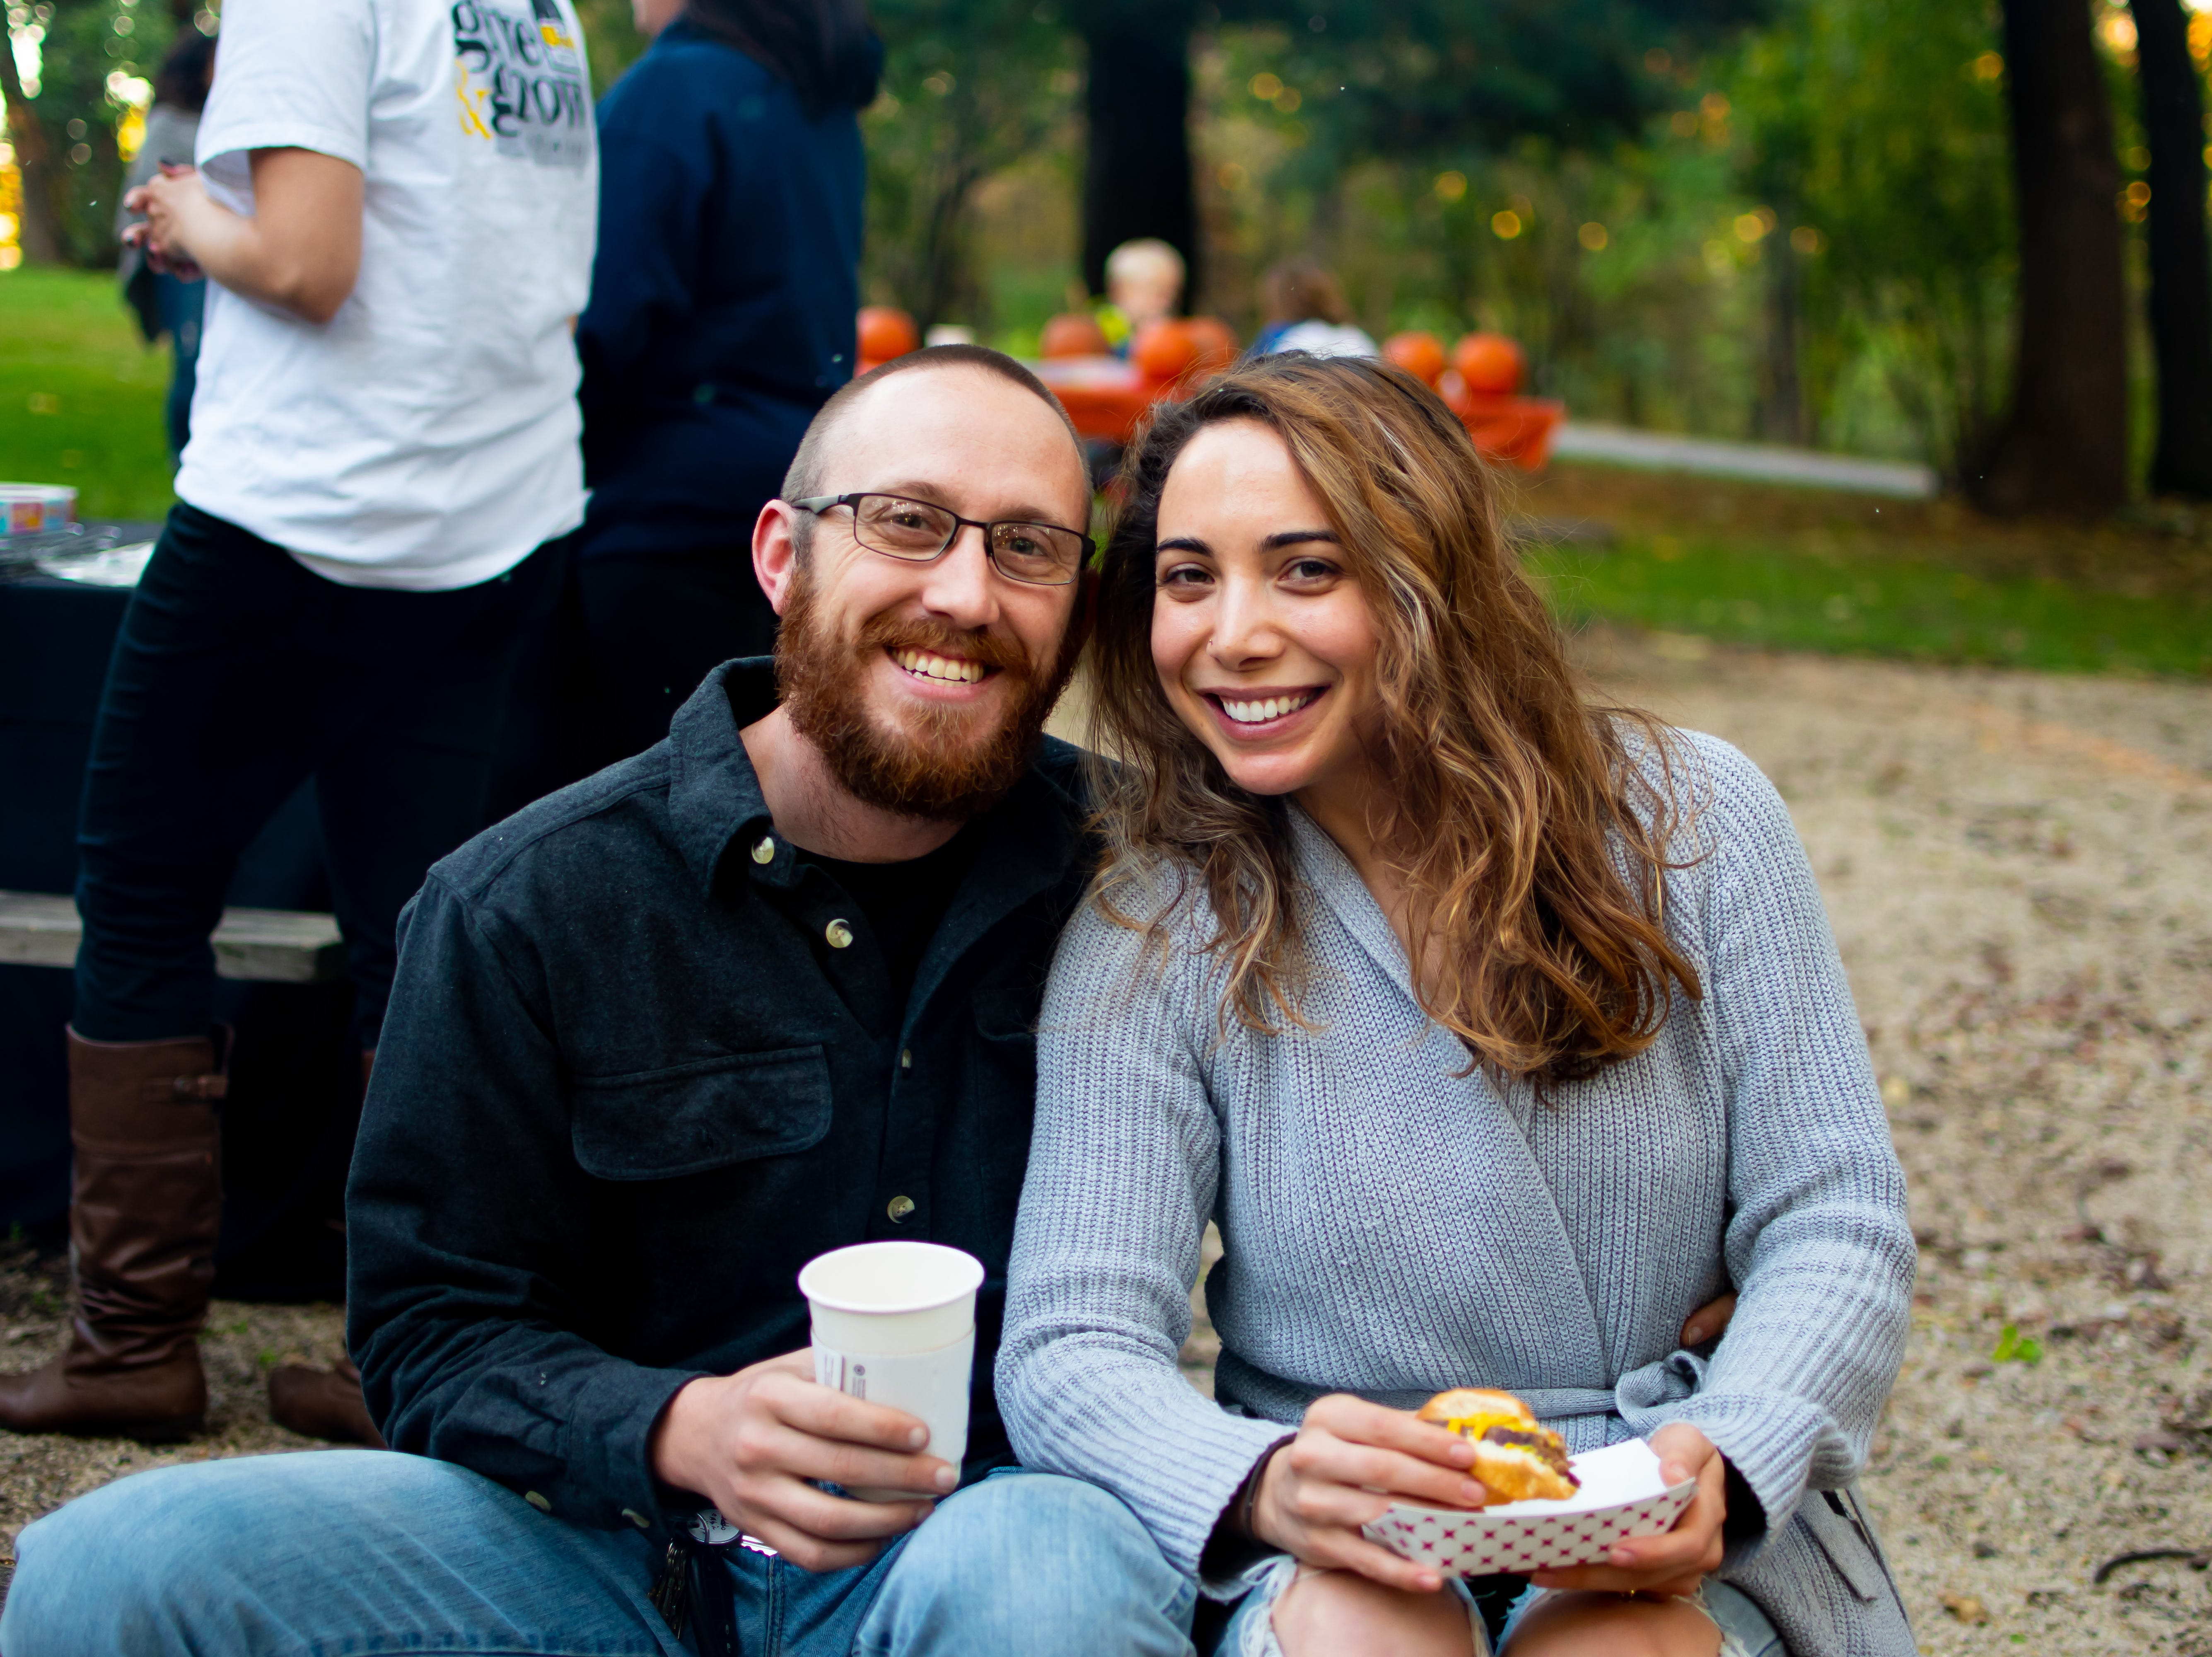 Tyler and Jasmine Gahagan, both of Texas, attend the Waukee Area Chamber of Commerce fall after hours party at Timberline Campground on Tuesday, Oct. 16, 2018 for in Waukee.